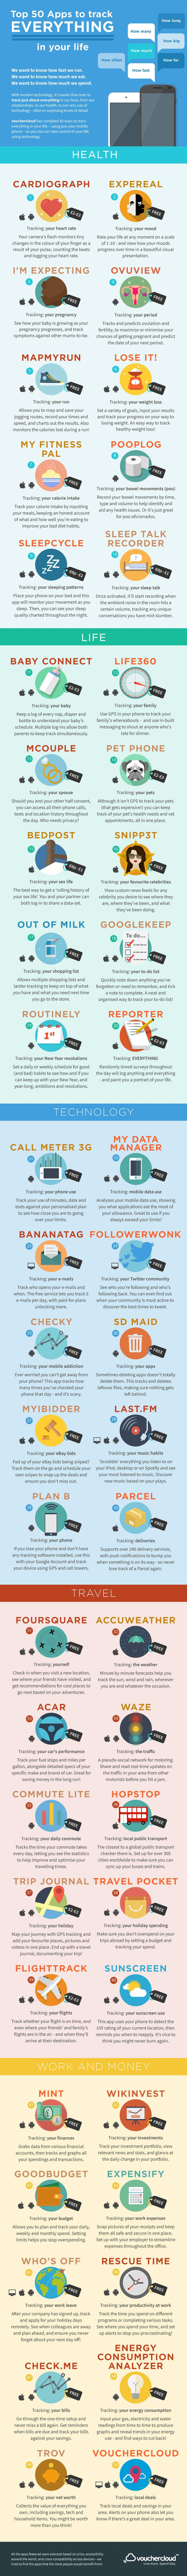 Top 50 Apps To Track Everything In Your Life #Infographic #Apps #Technology